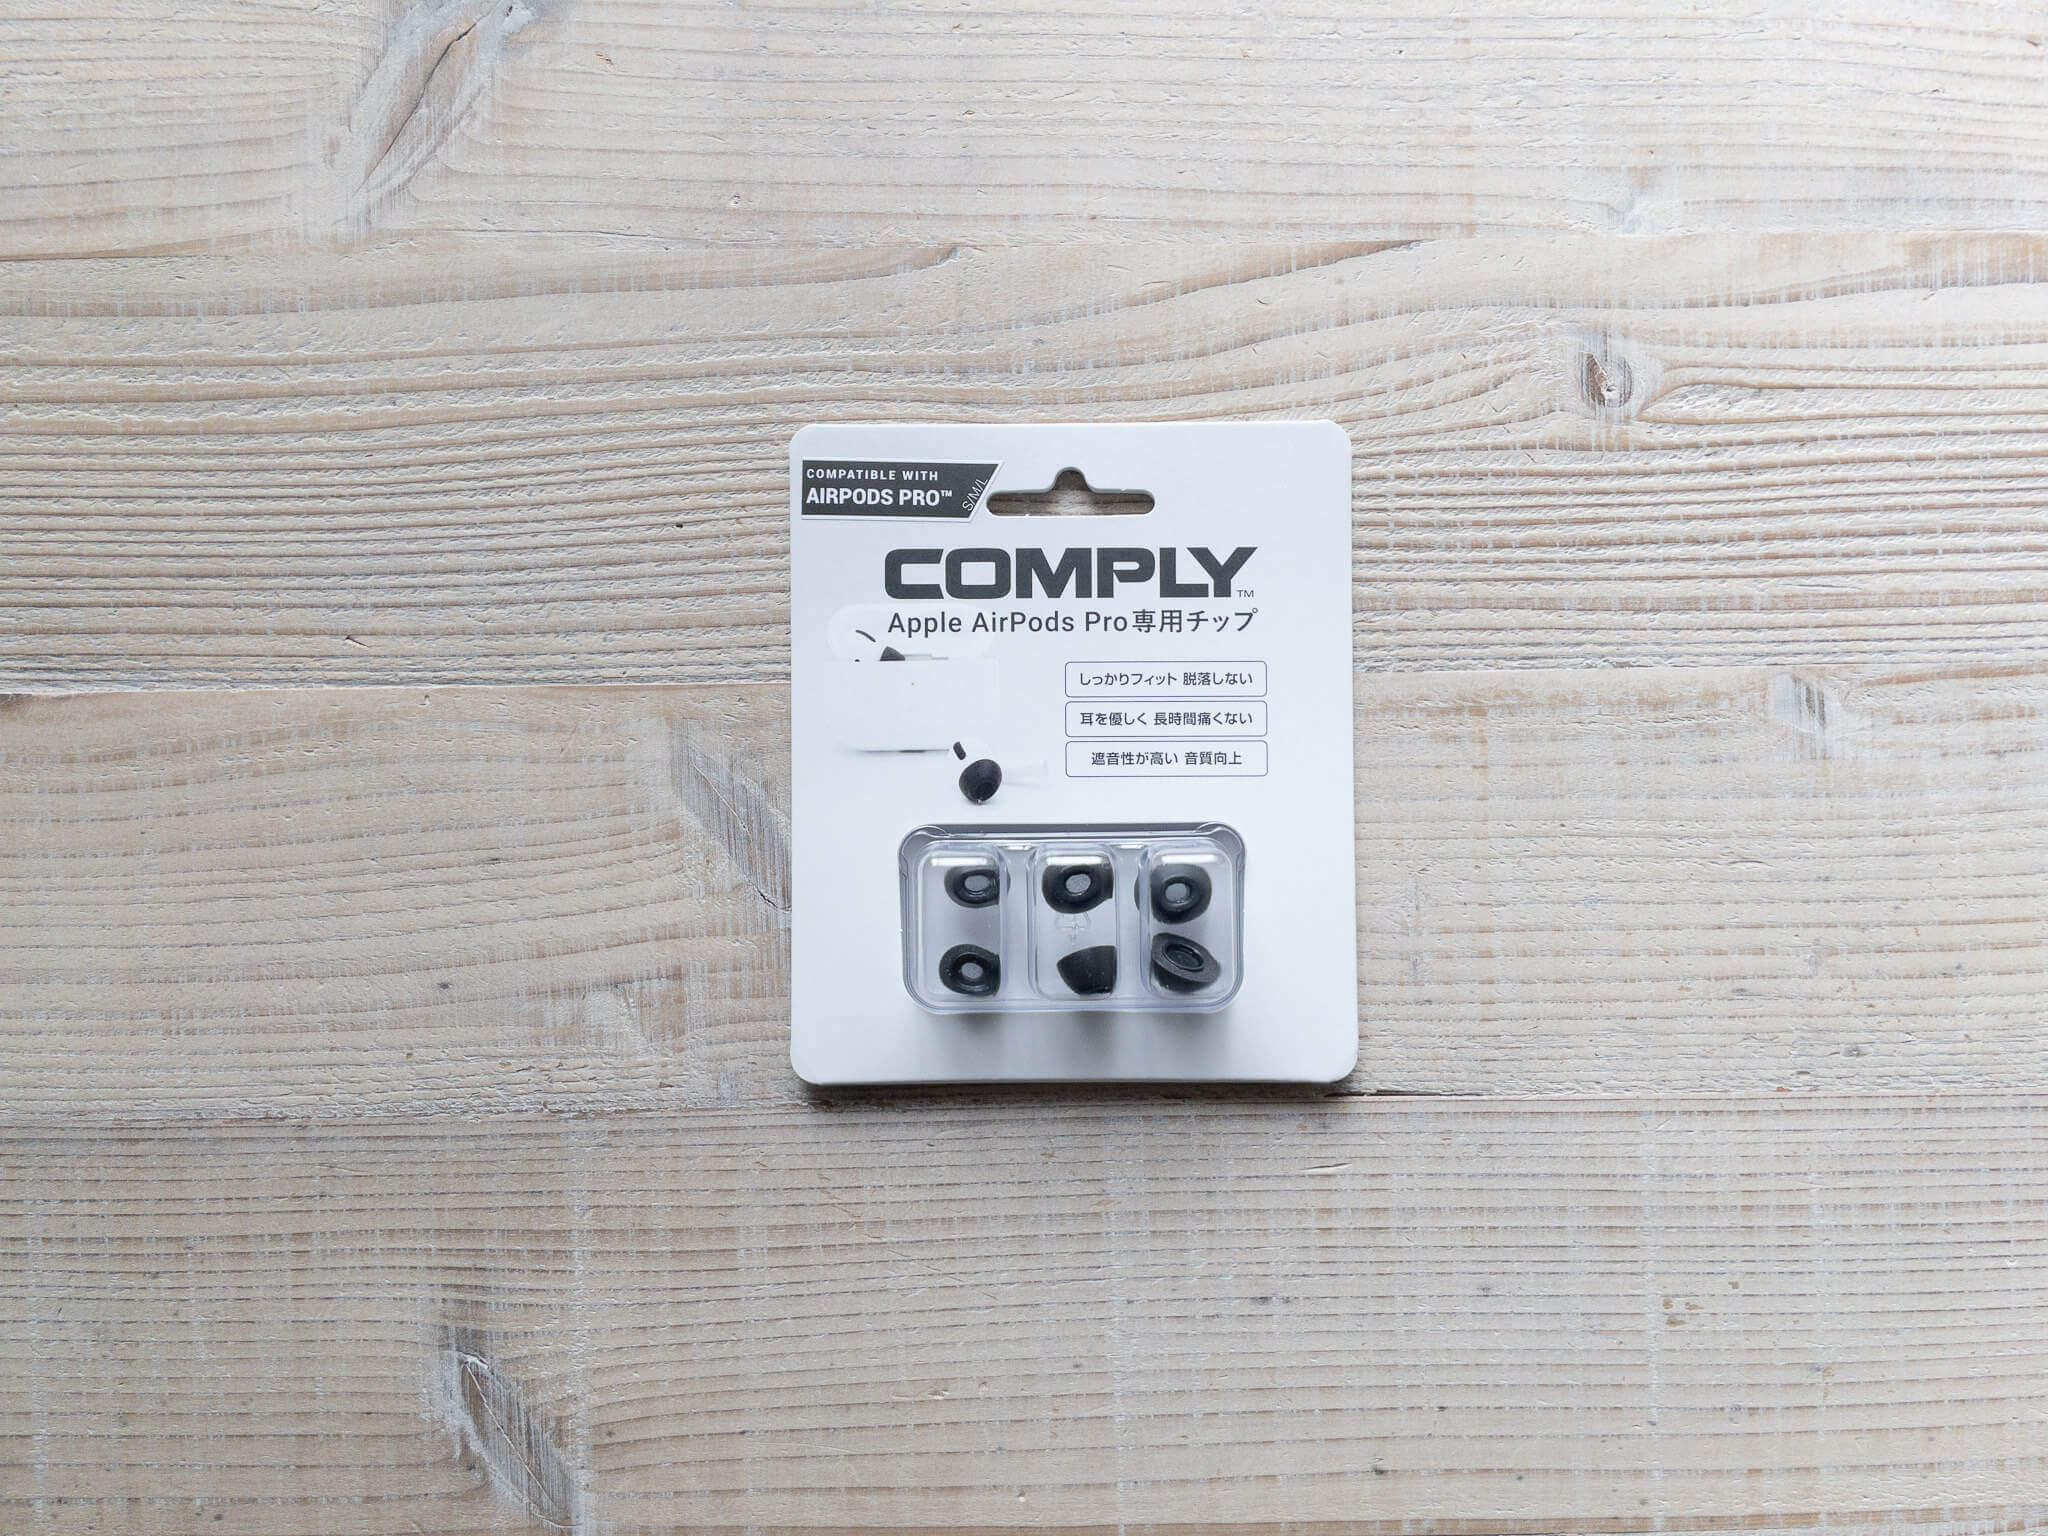 210314 comply airpods pro 1